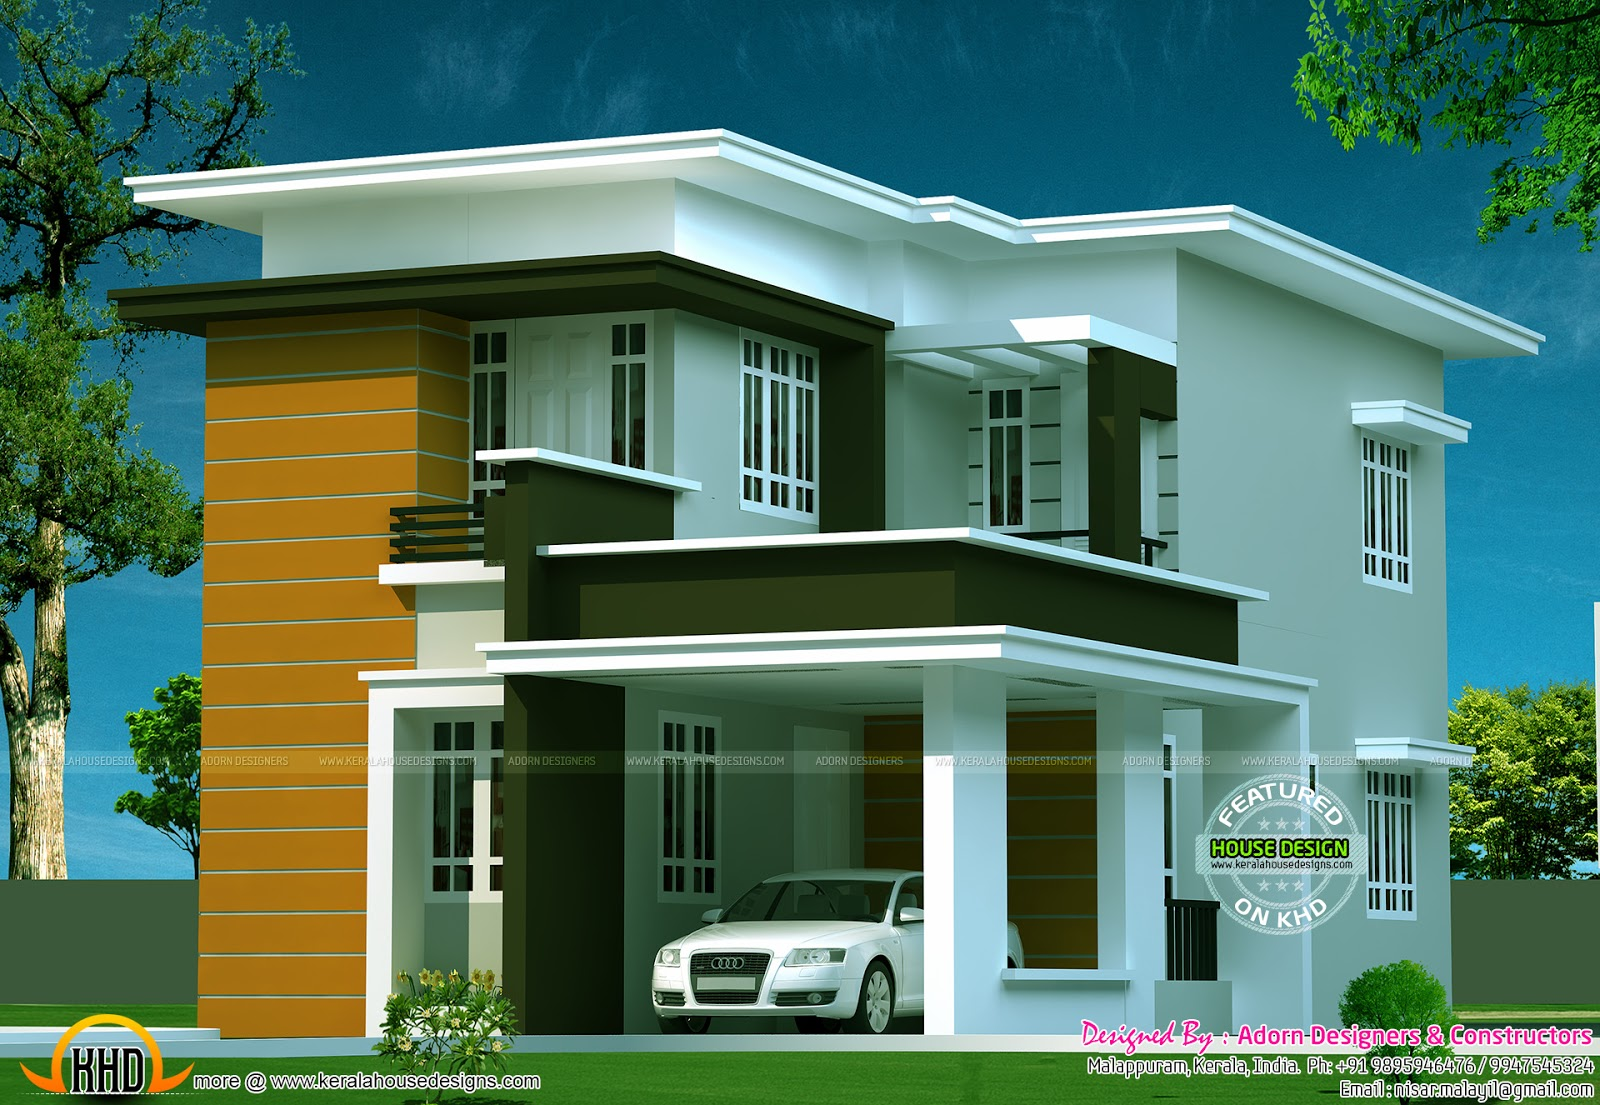 New flat roof house kerala home design and floor plans for Flat roof home plans